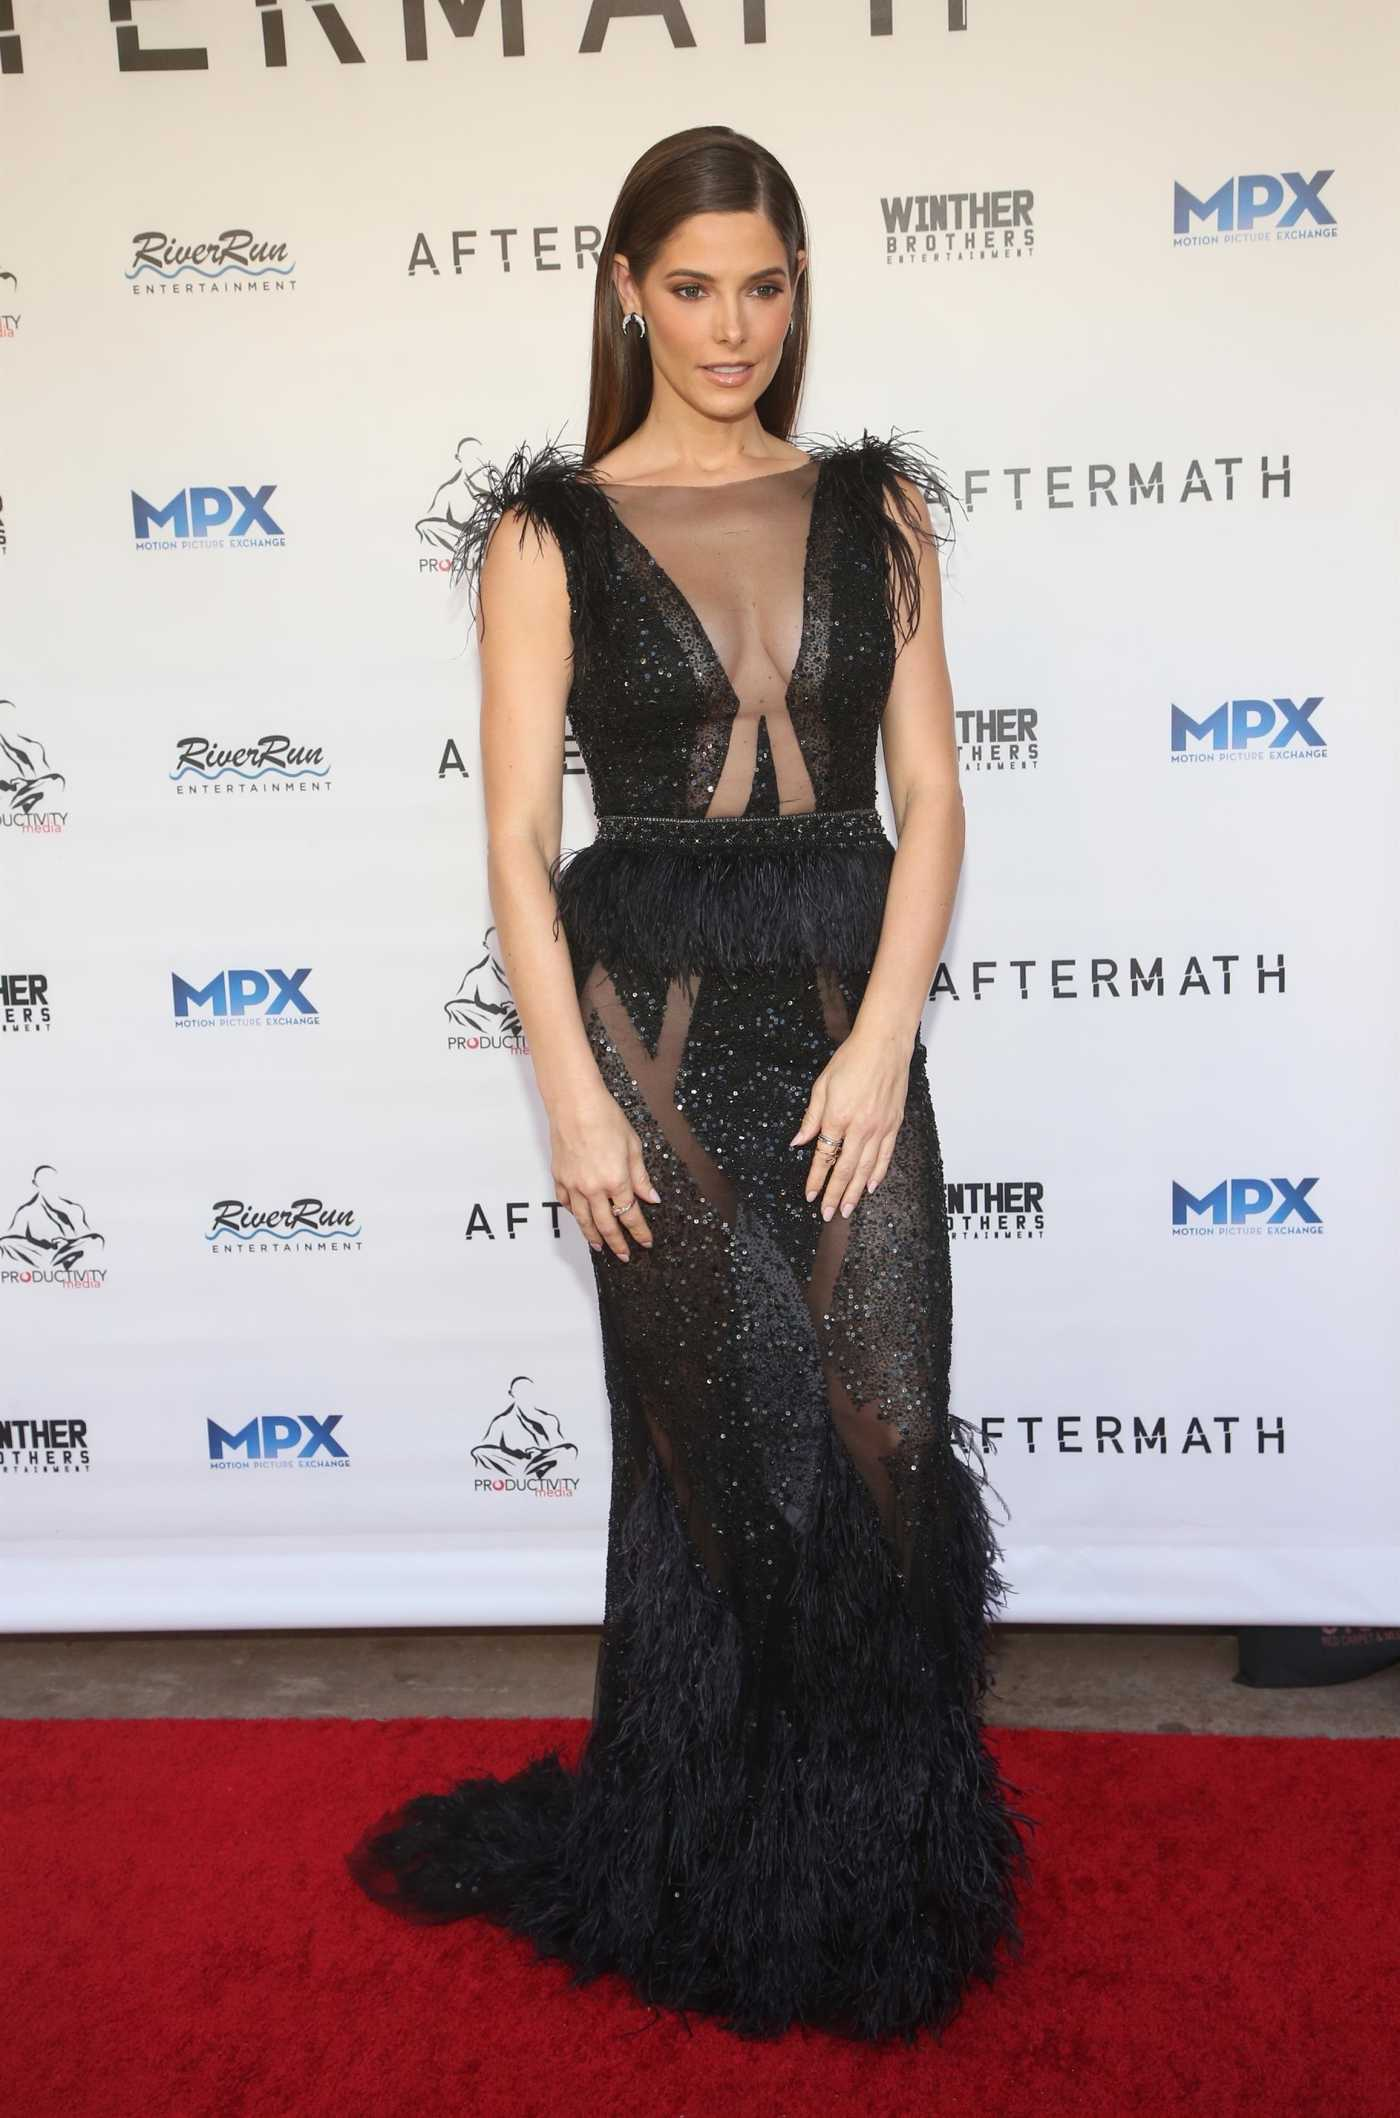 Ashley Greene Attends the Aftermath Premiere in Los Angeles 08/03/2021